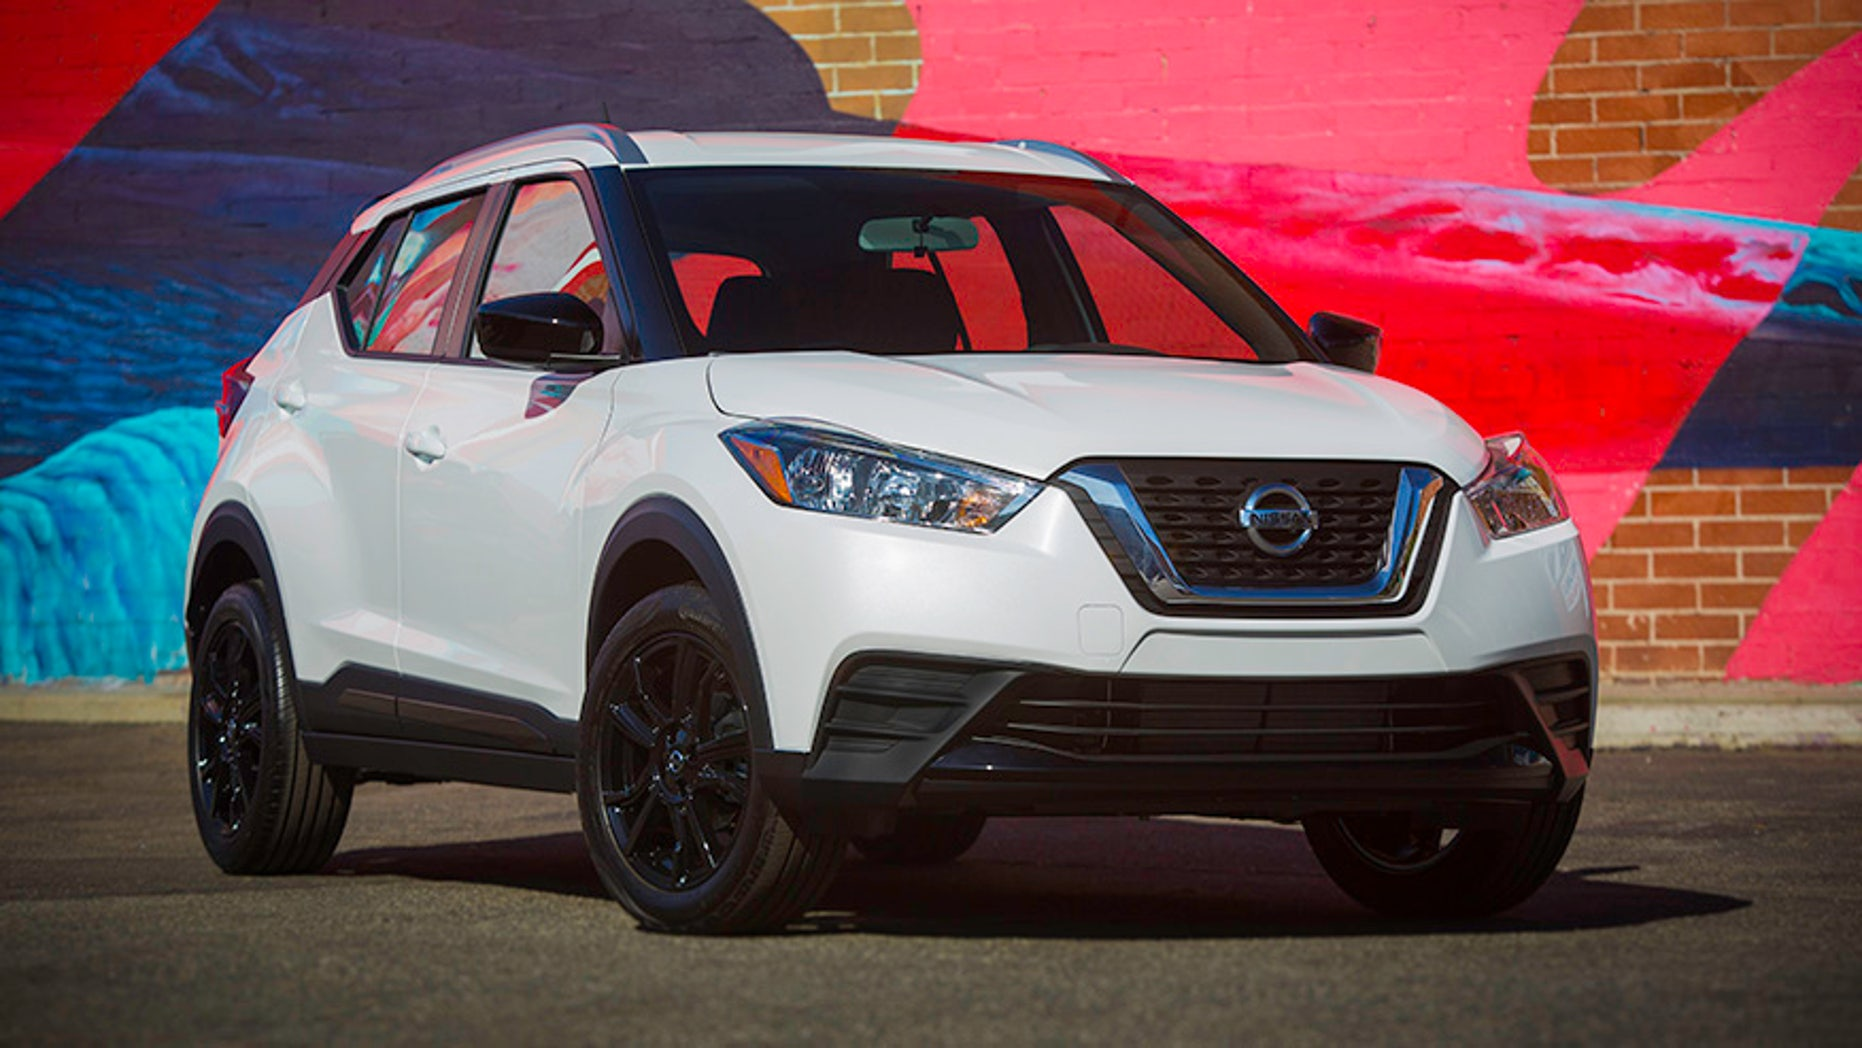 Beautiful The All New 2018 Nissan Kicks, The Newest Entry In The Fast Growing